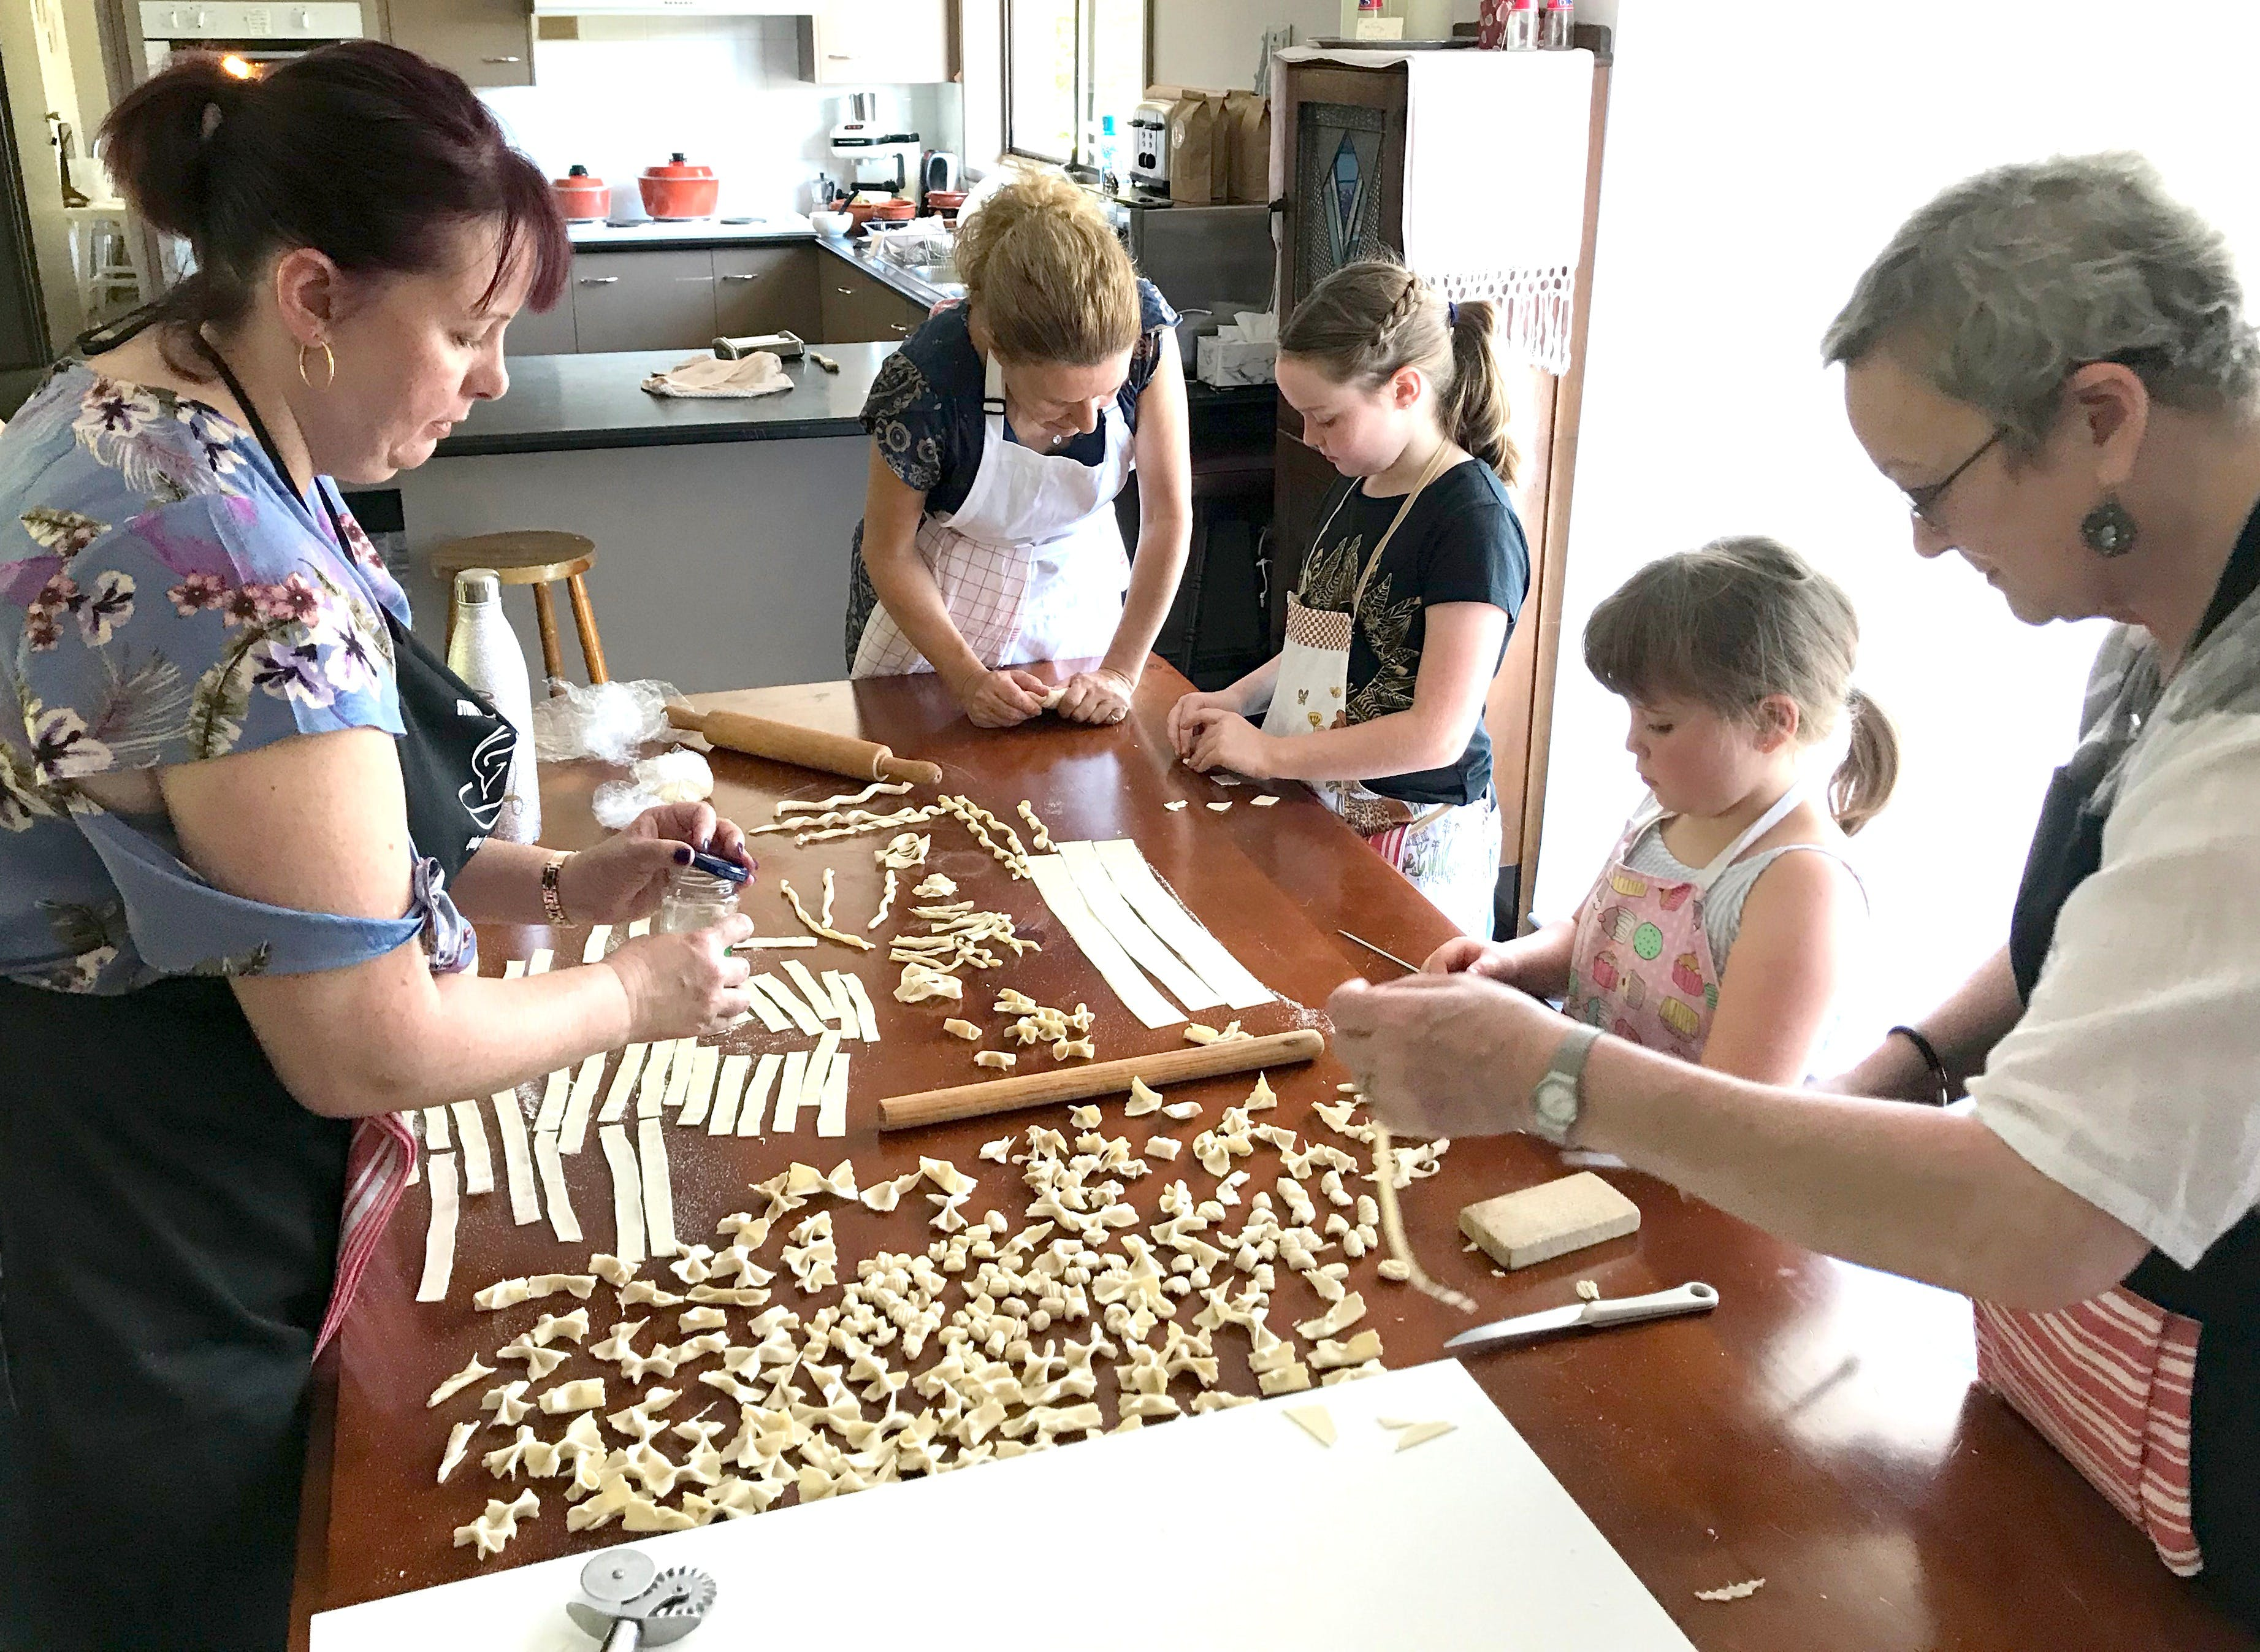 Kids Pasta Making Class - hands on fun at your house - Accommodation Port Macquarie